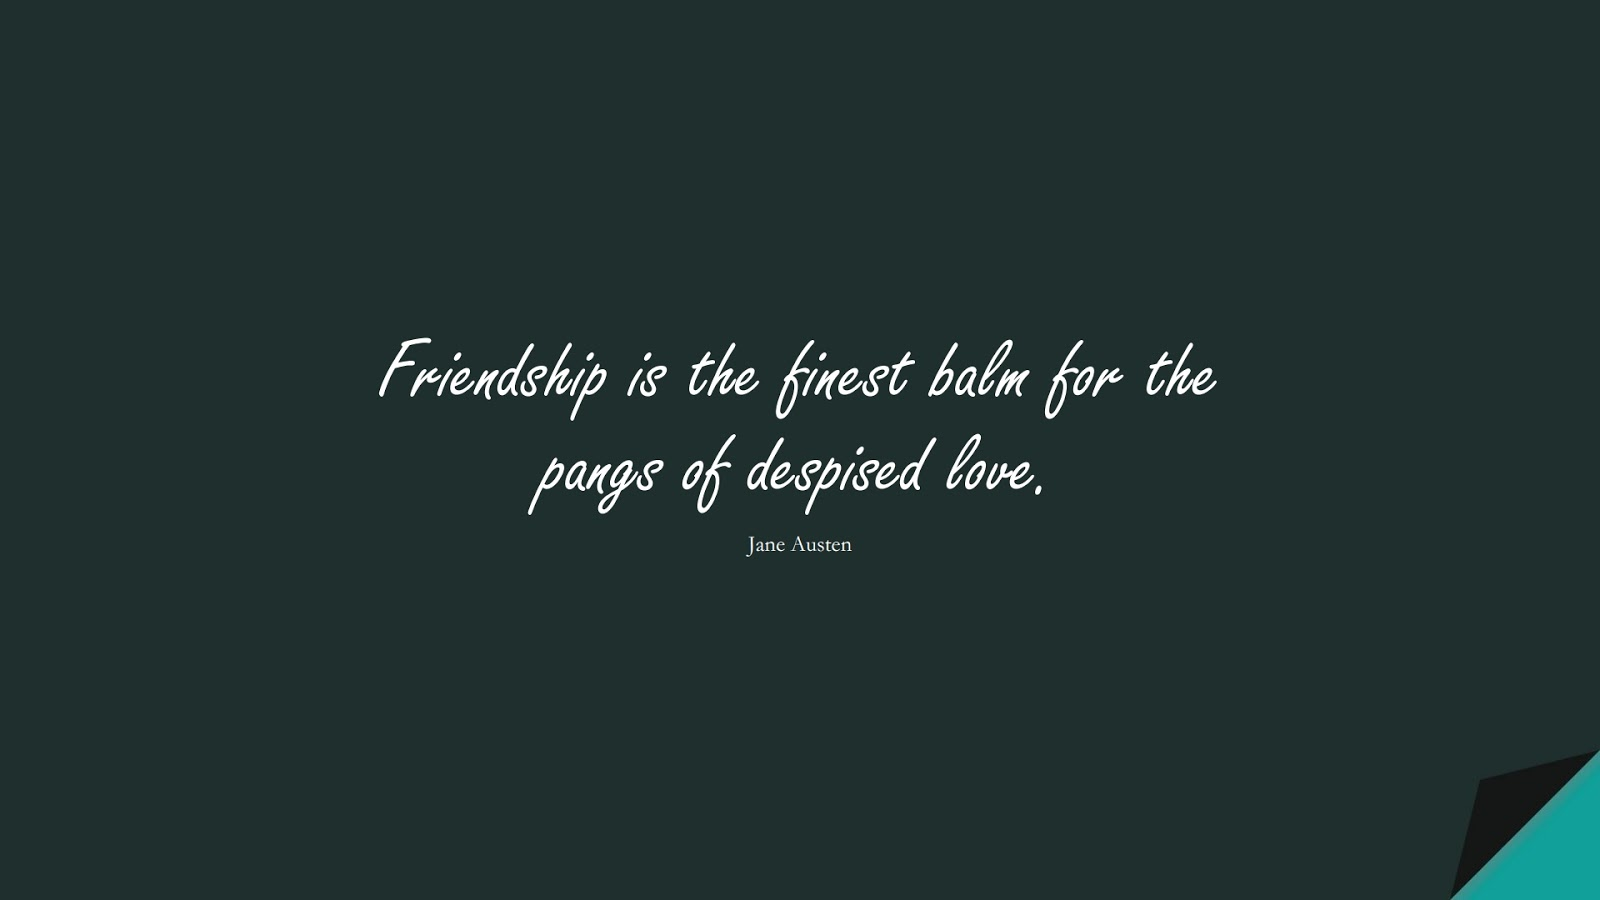 Friendship is the finest balm for the pangs of despised love. (Jane Austen);  #LoveQuotes